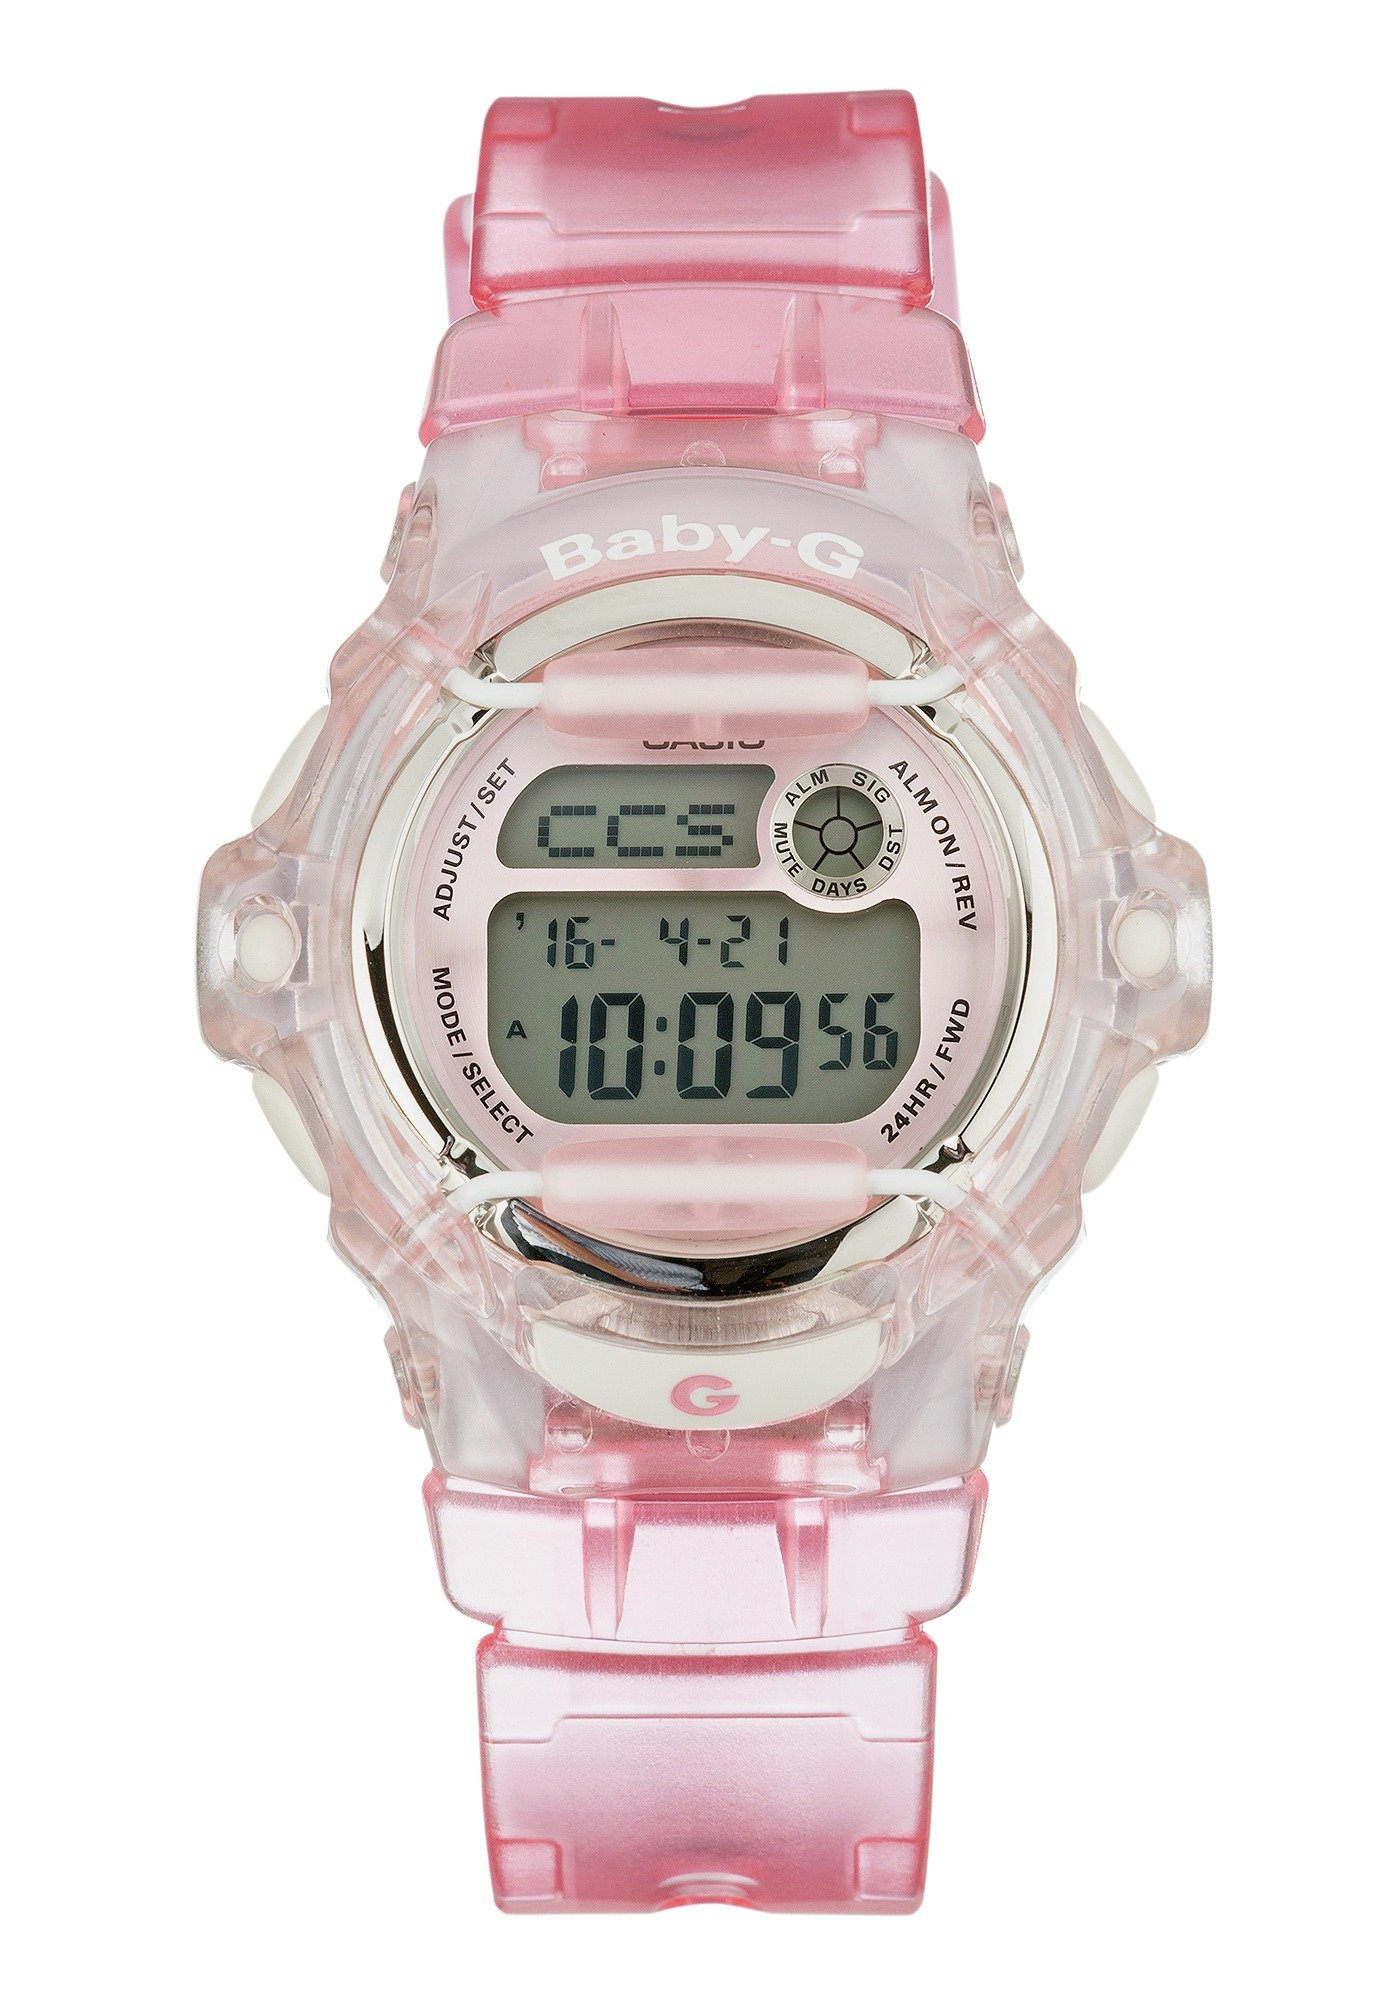 Image of Casio - Baby-G BG-169R-4ER World Time Telememo Digital - Watch